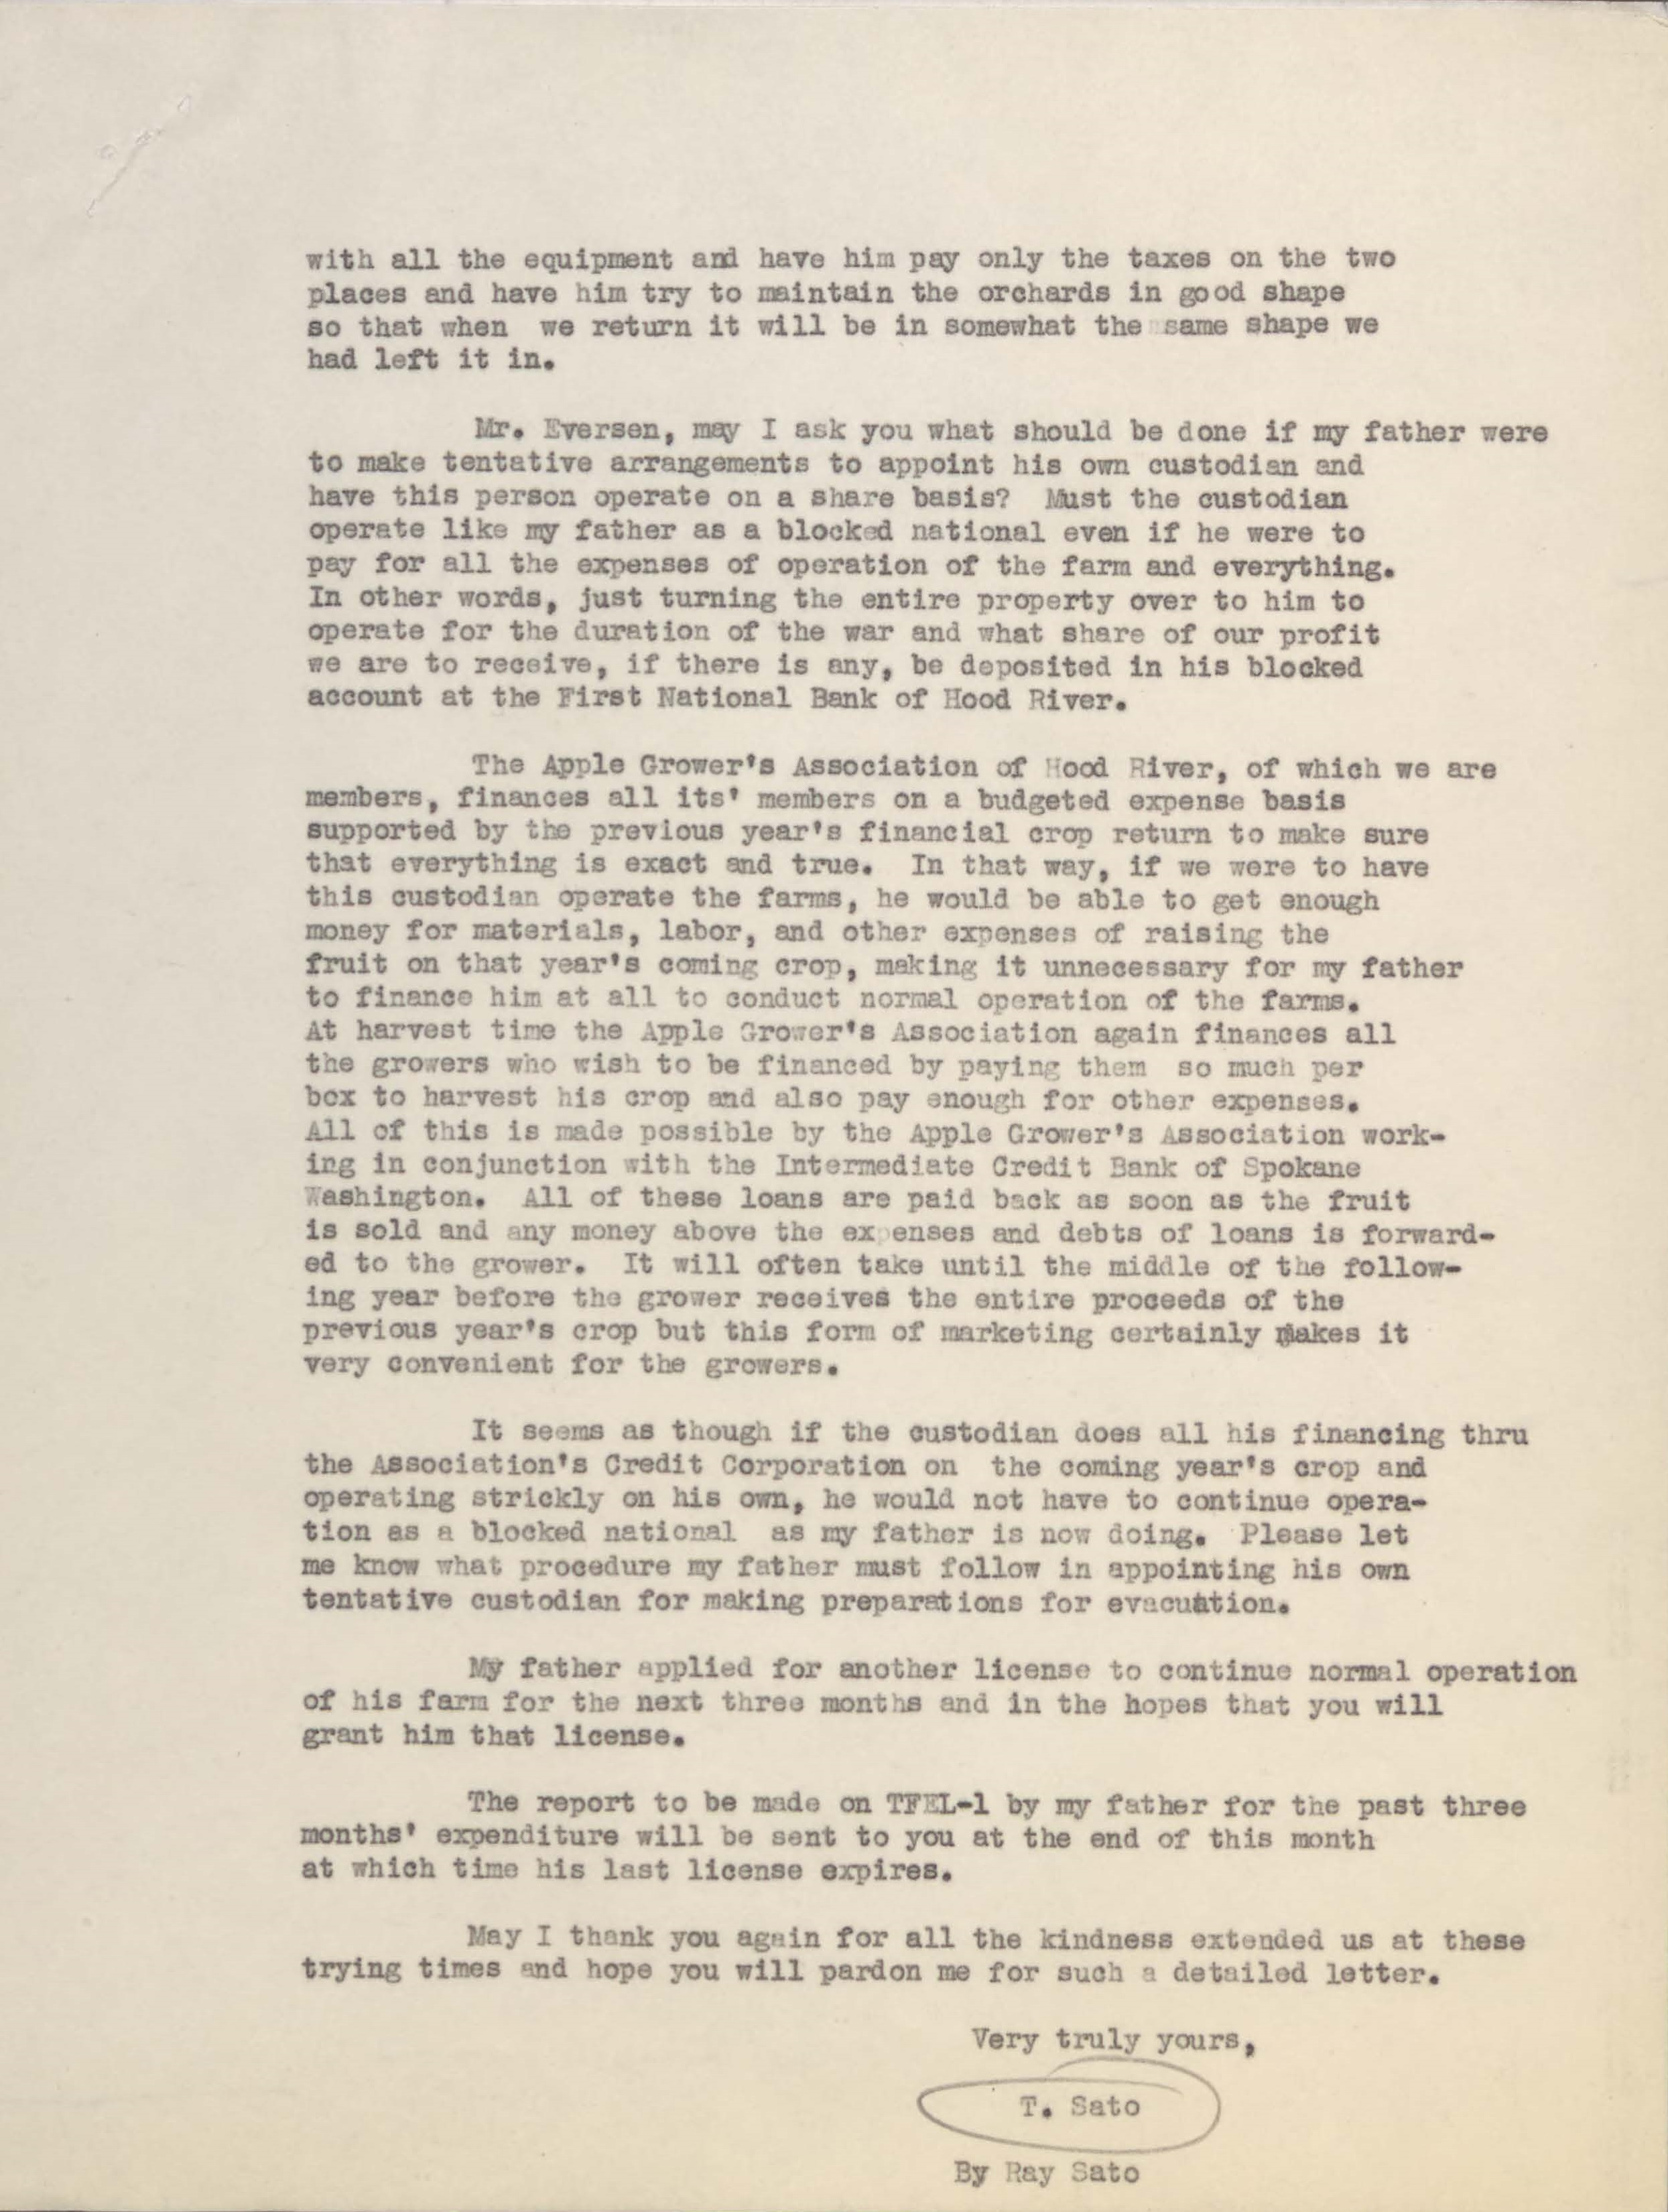 portland-letters-blog-images_pages-from-port_01_034__page_06